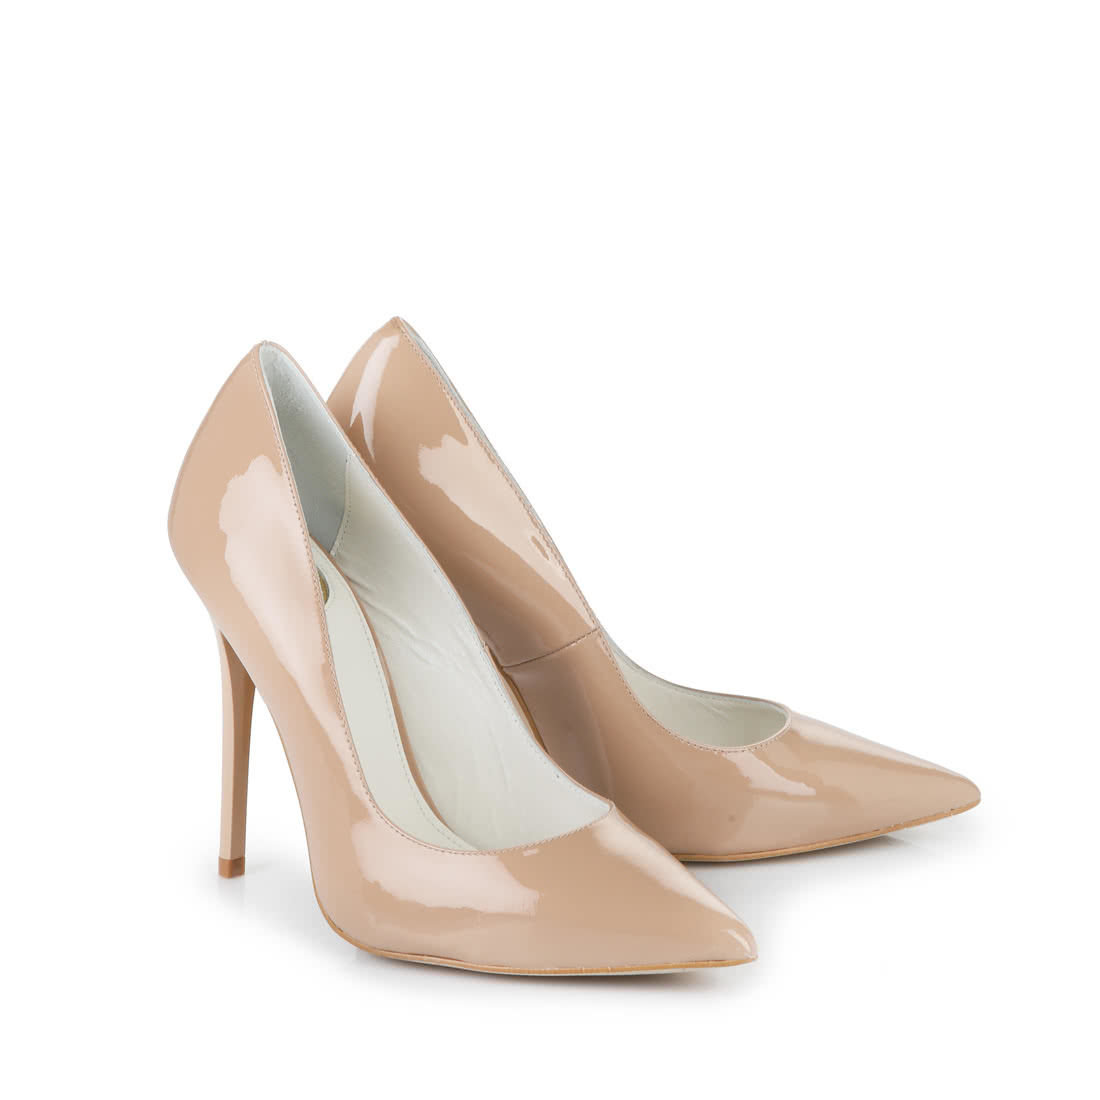 Buffalo pointed pumps patent leather 11 cm nude buy online